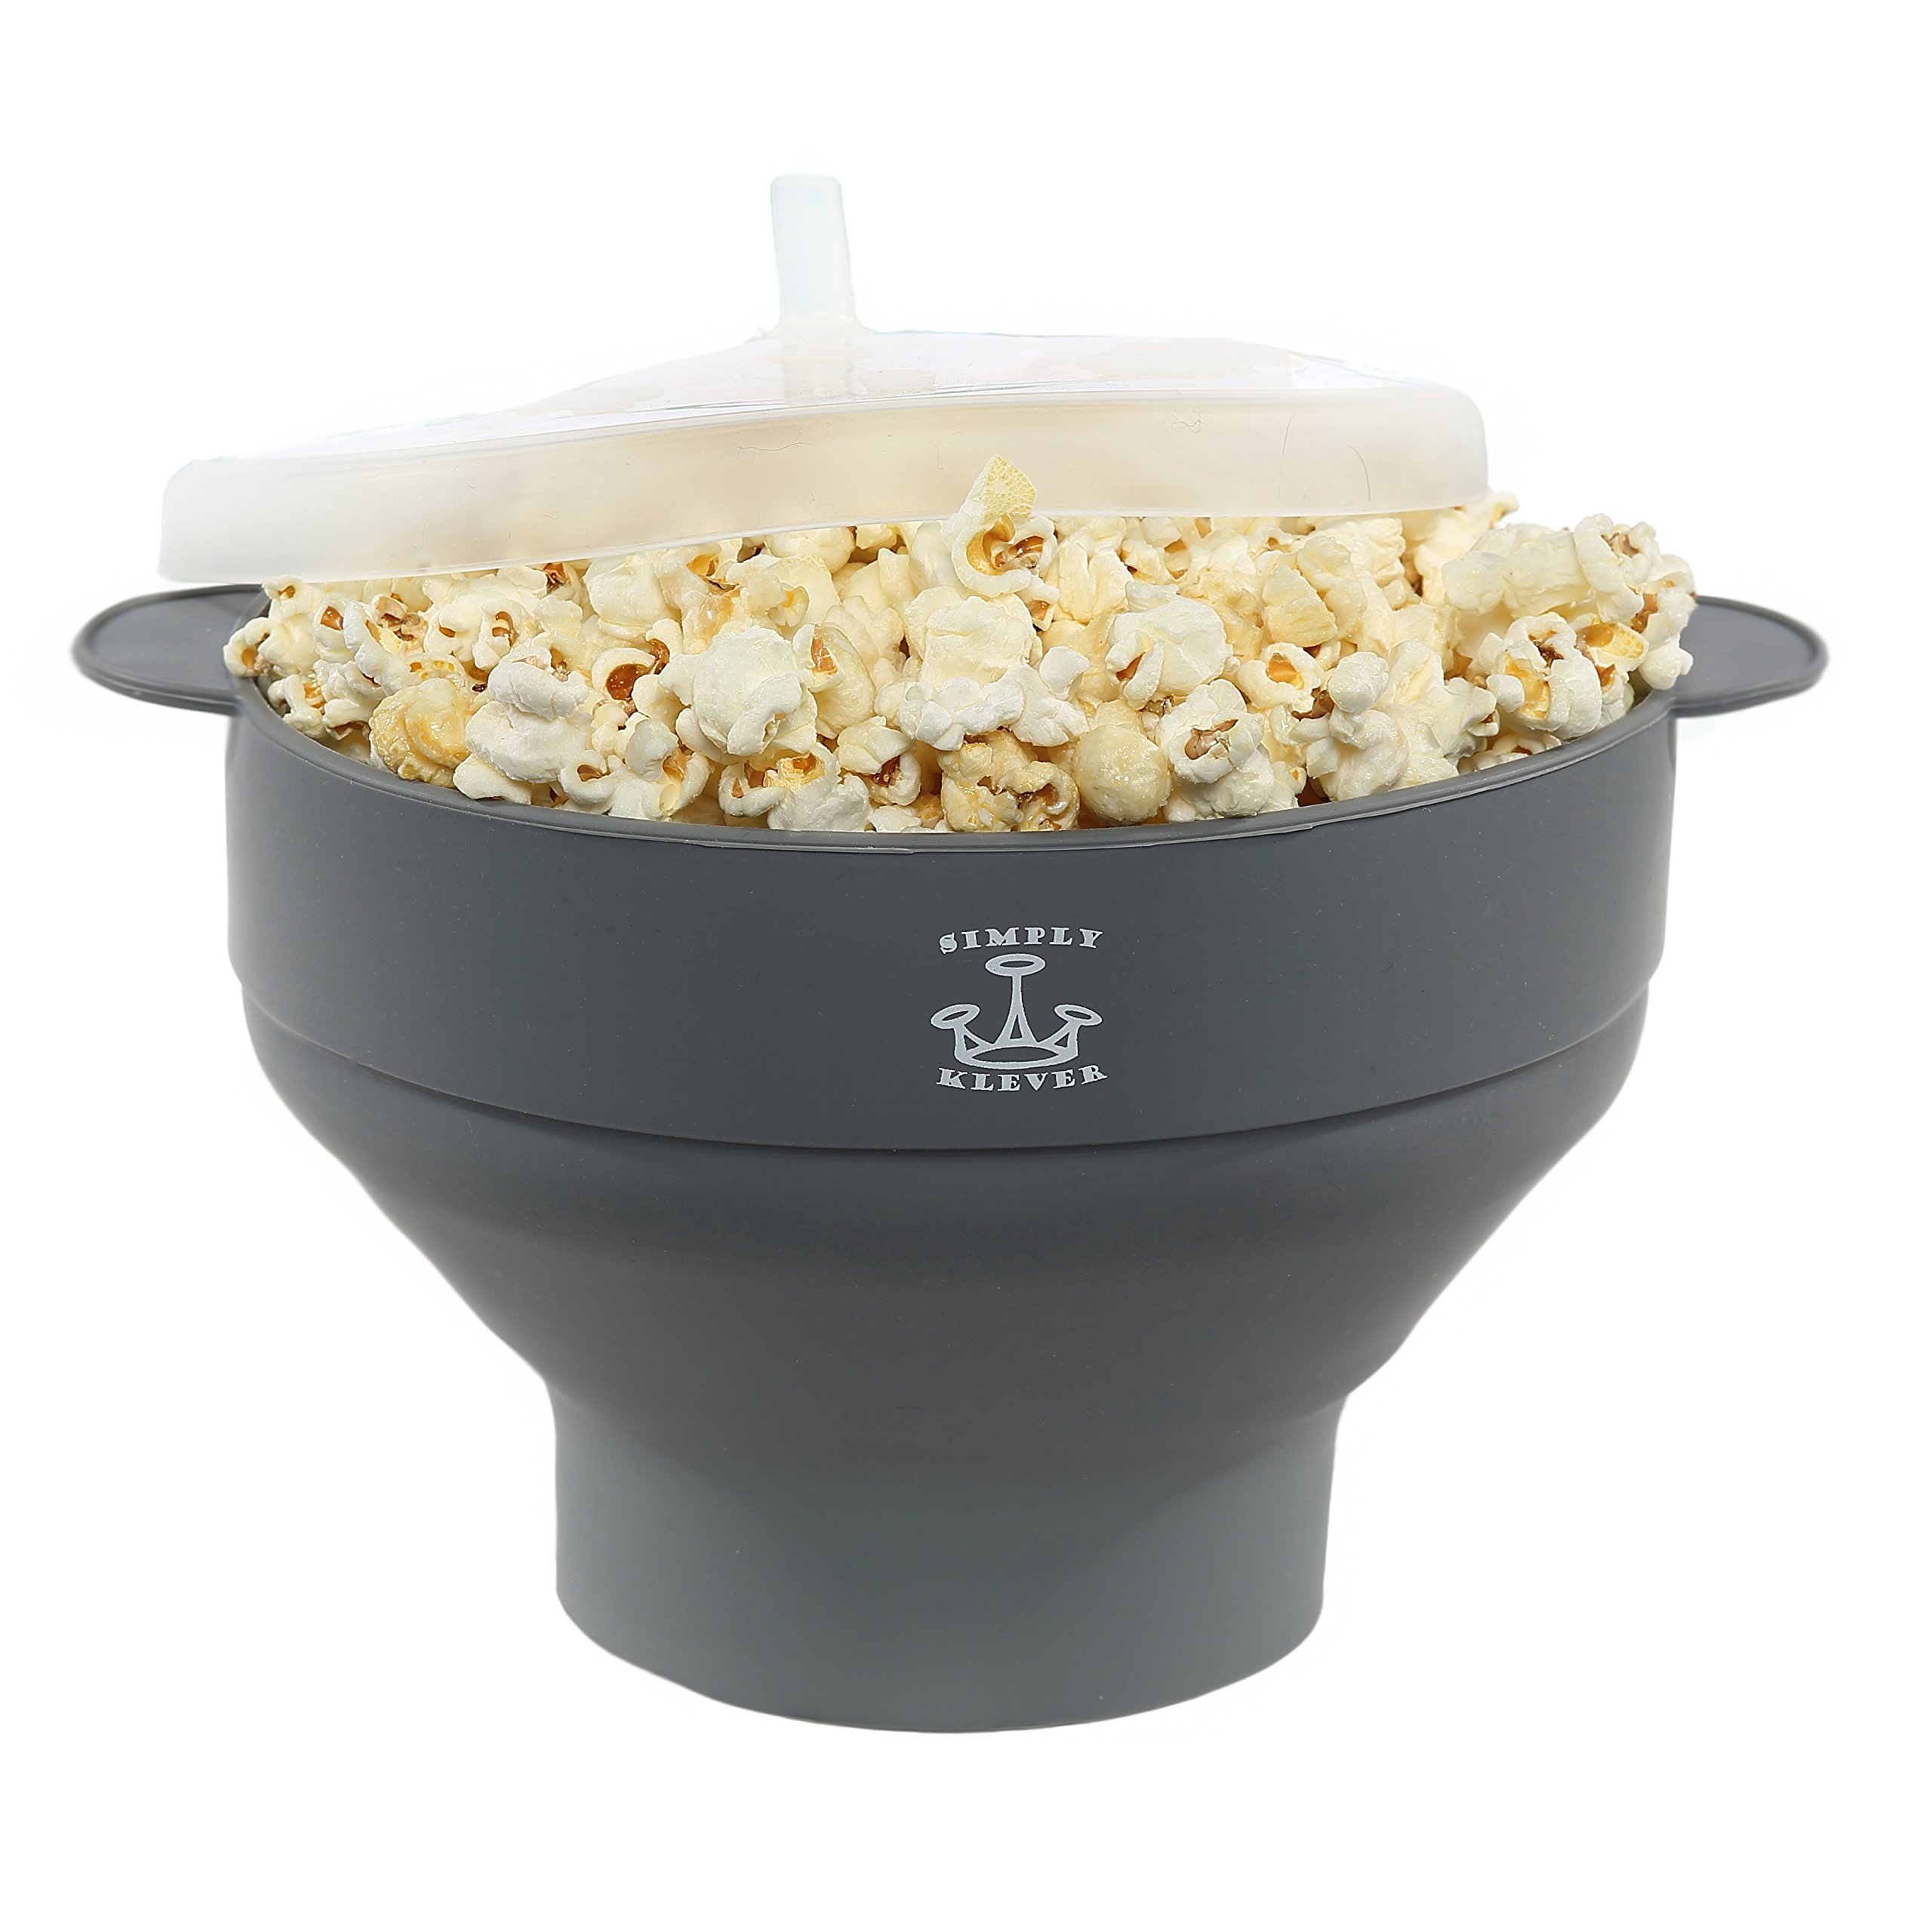 Simply Klever Microwave Popcorn Popper, Silicone Popcorn Maker, Collapsible Bowl BPA Free (Grey) - THE HEALTHY LOW CALORIE SNACK